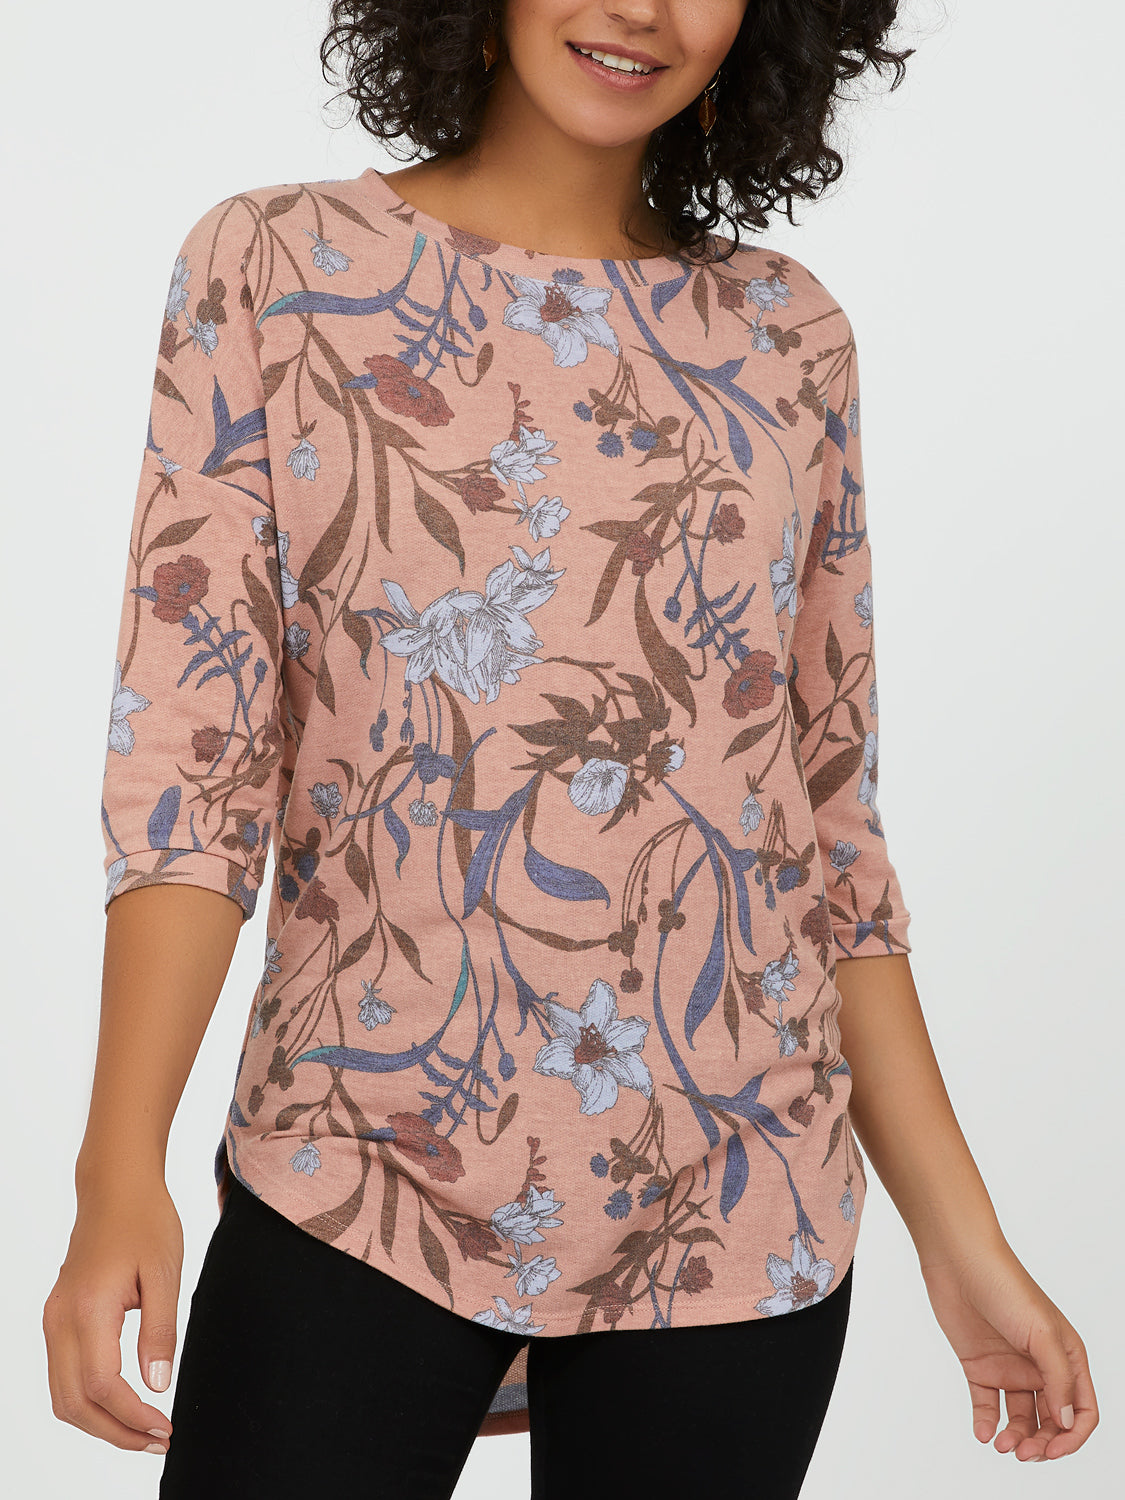 ¾ Sleeve Floral French Terry Top